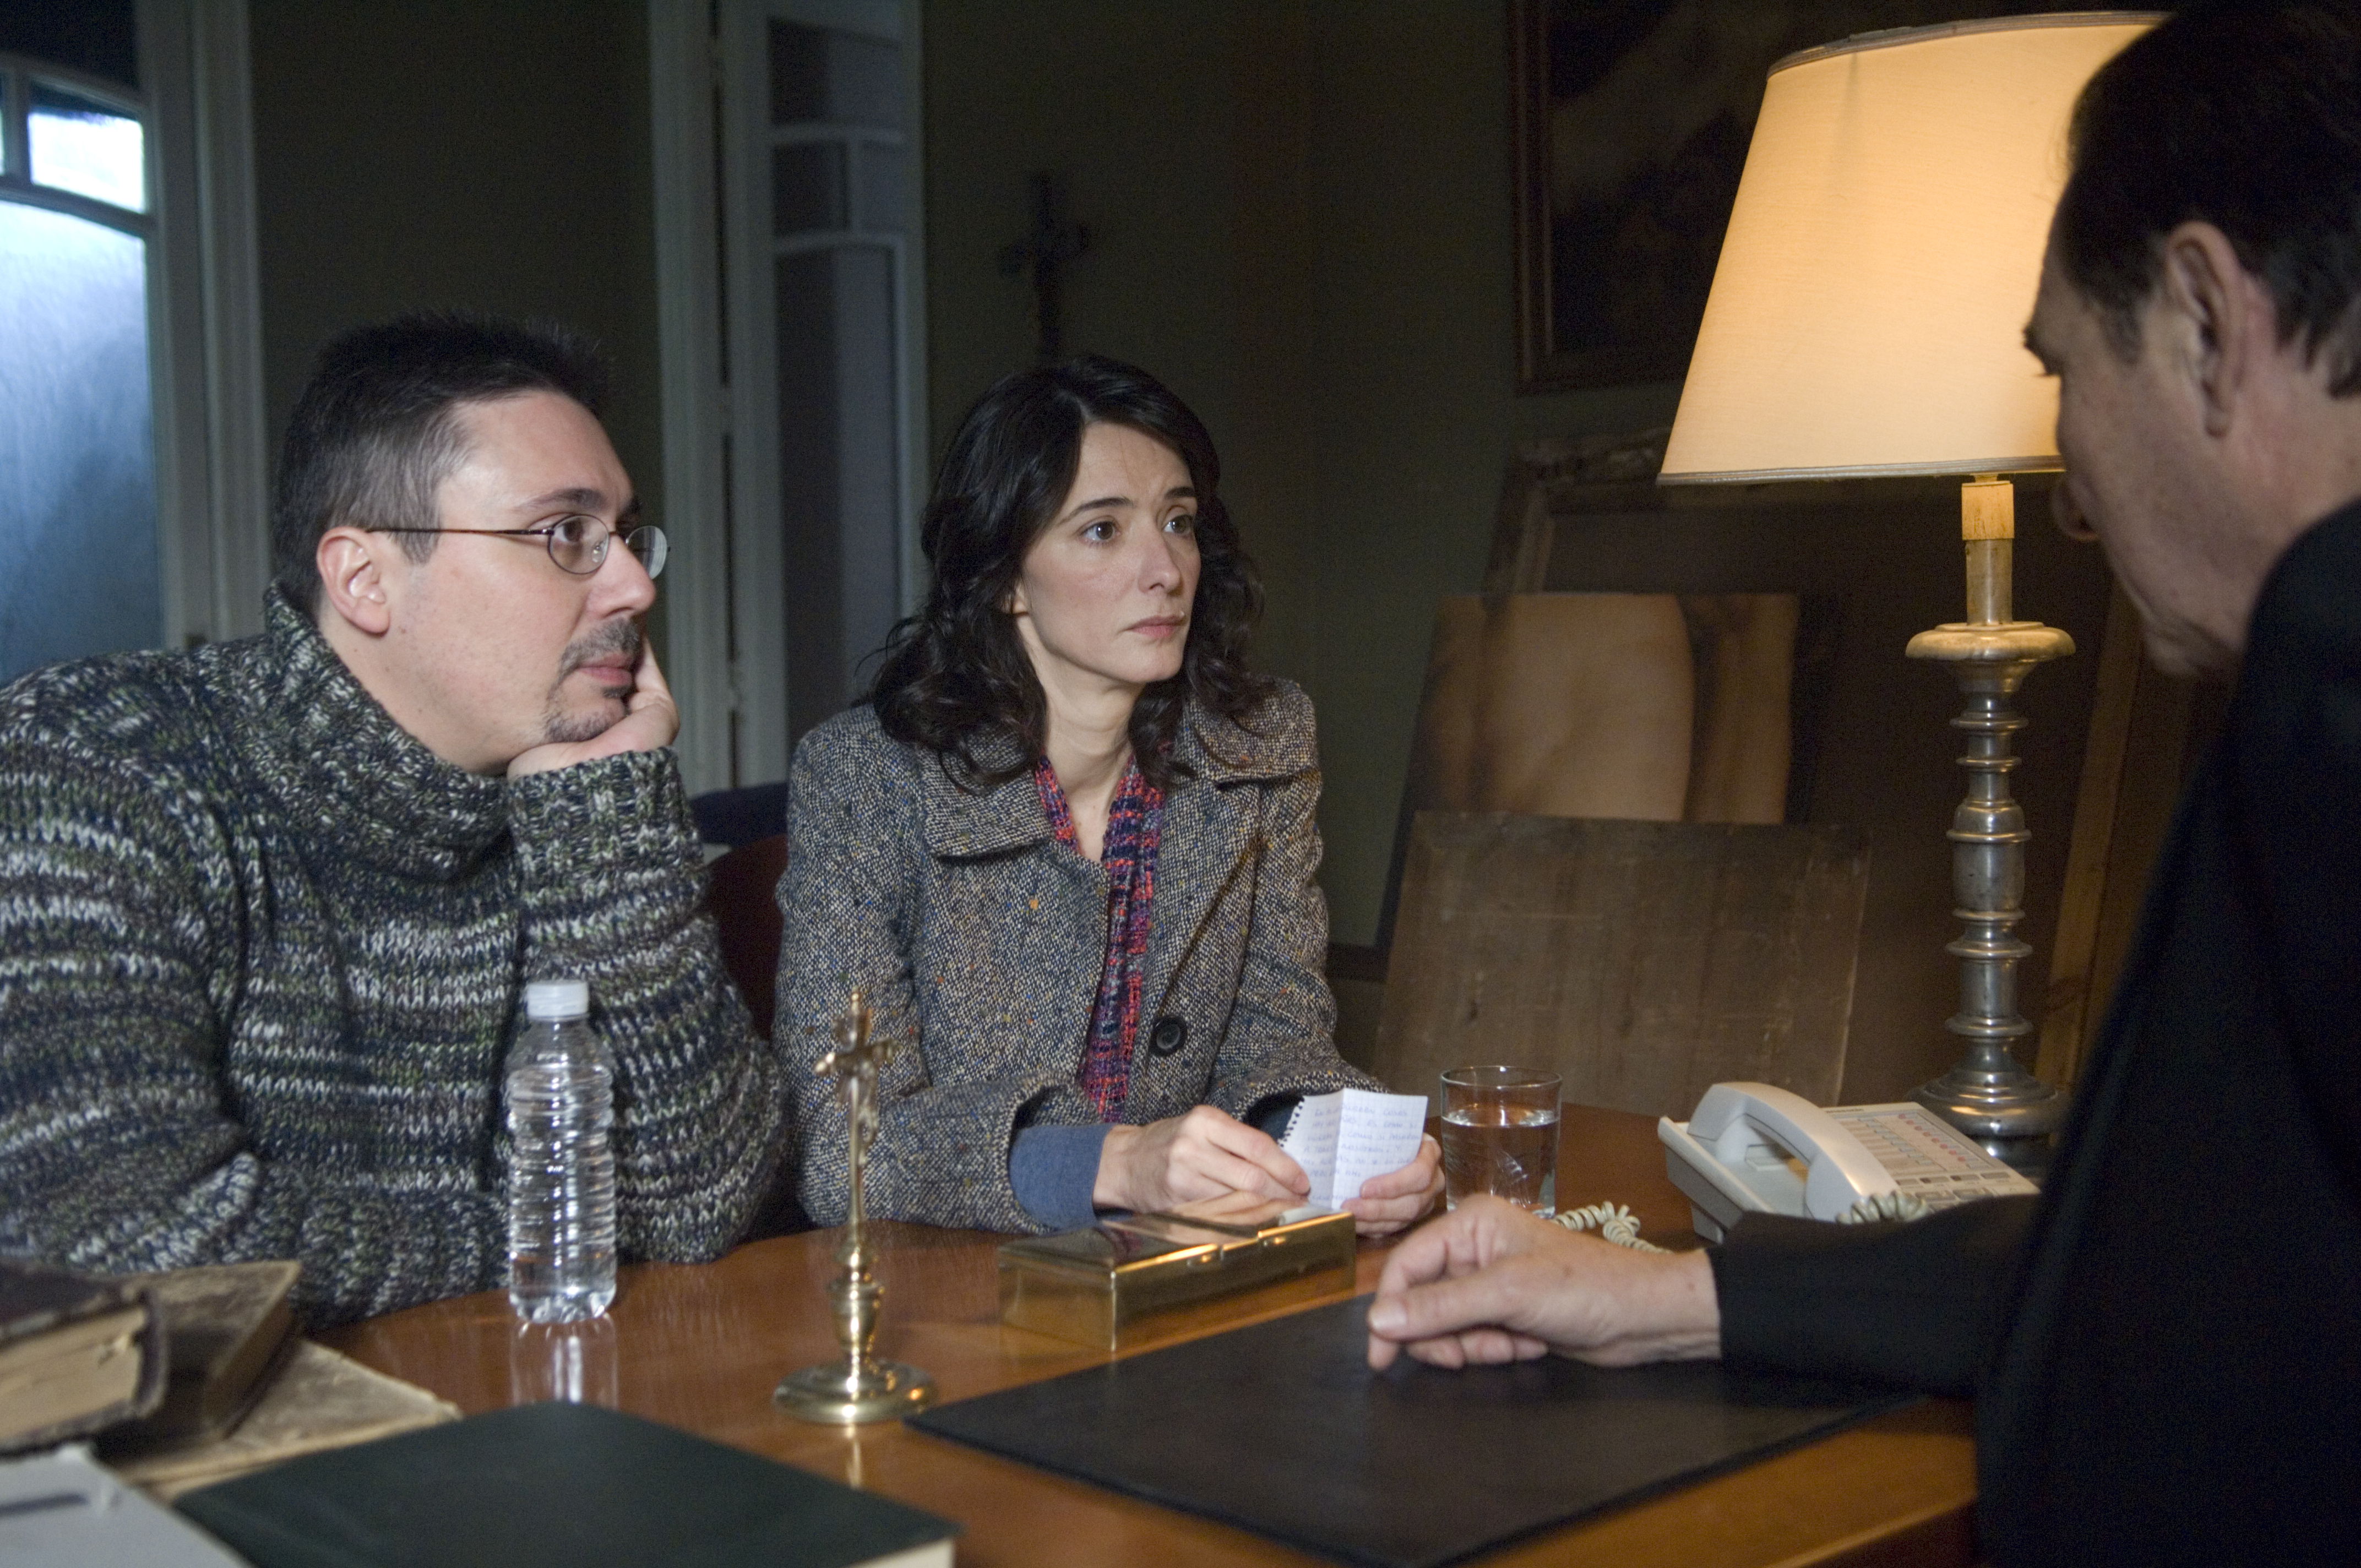 Elio Quiroga, Héctor Colomé, and Ana Torrent in No-Do (2009)